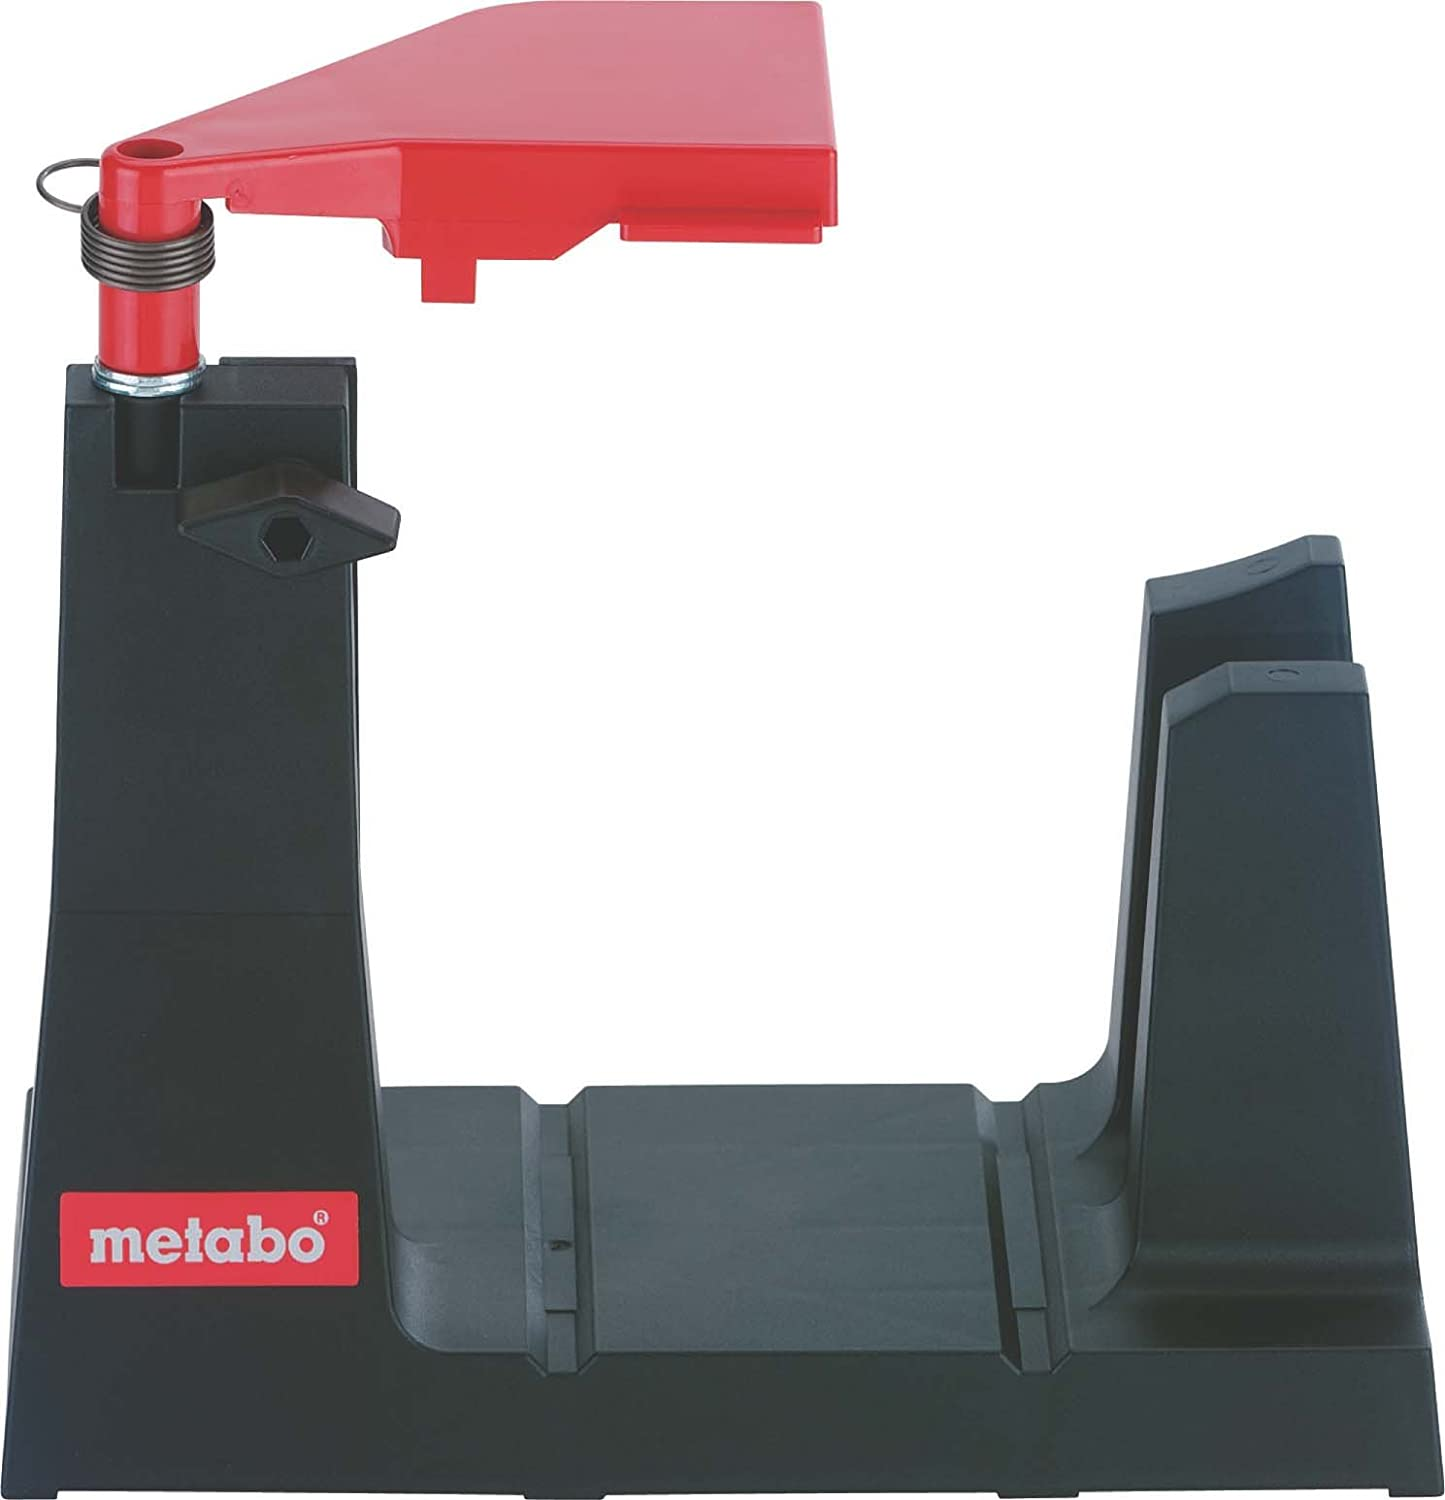 Metabo Ho 0882/Binette 0983  Base 631599000